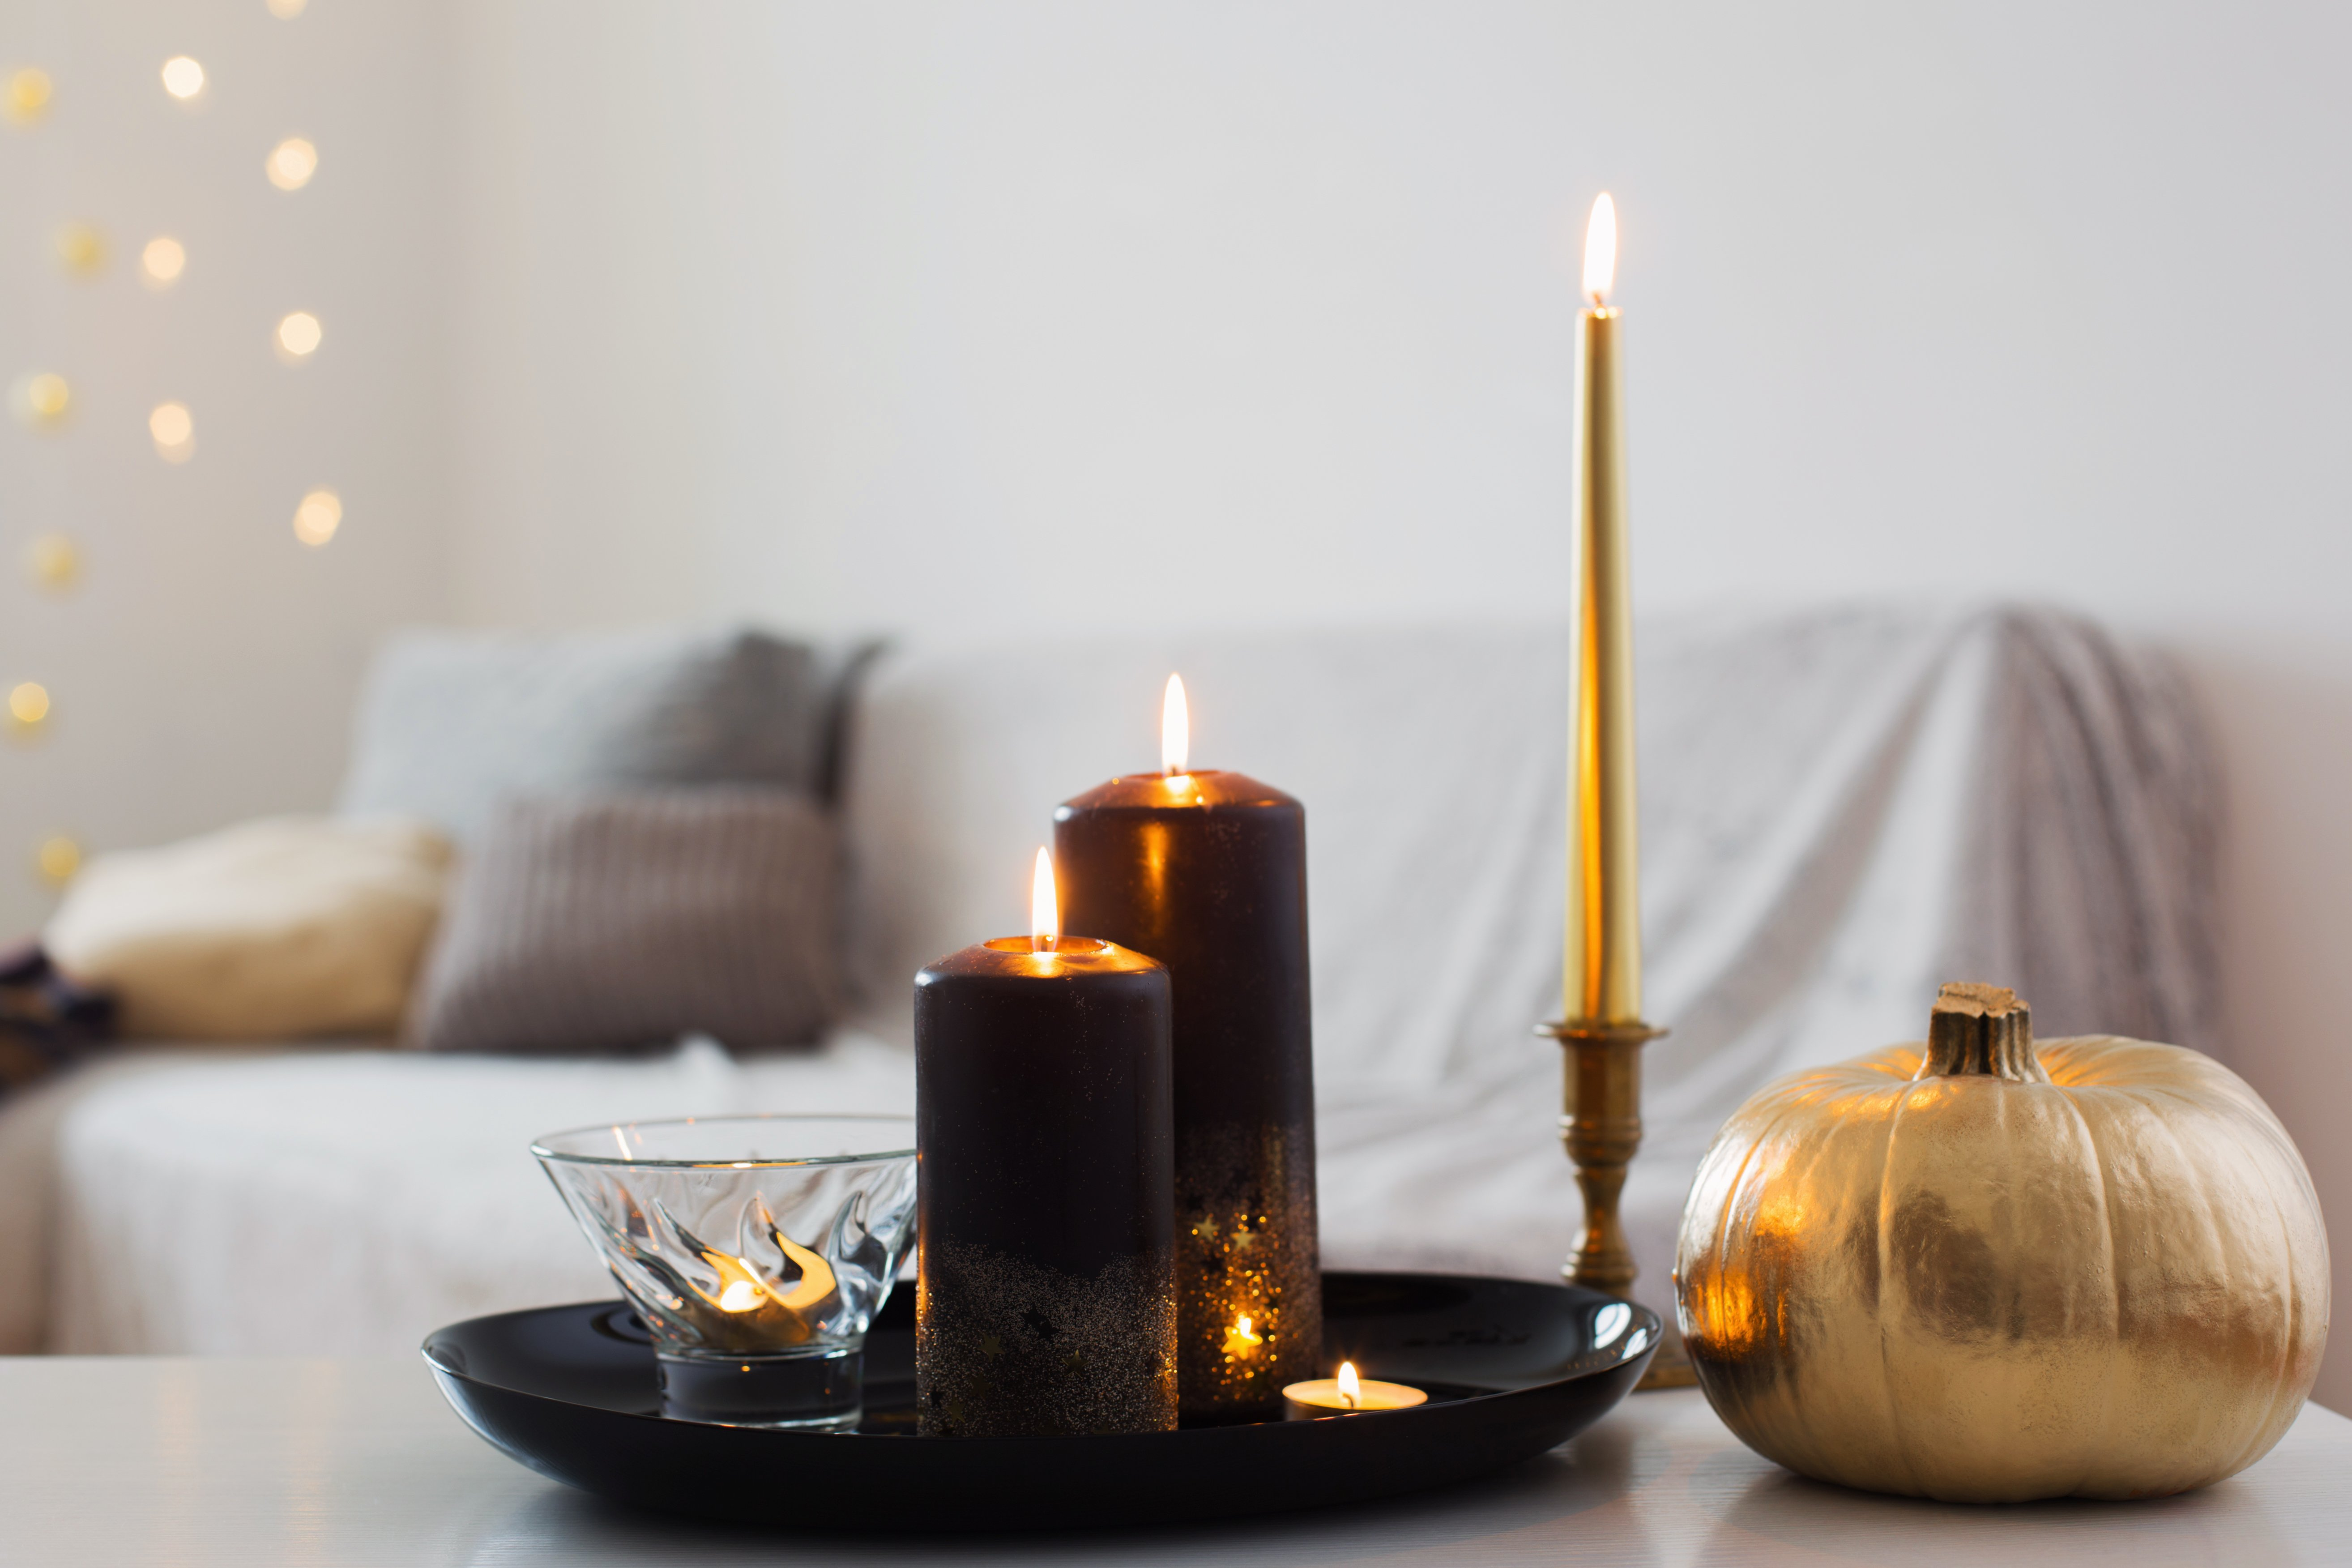 Classy Halloween Décor Ideas and Activities to Try in Your Condo Image